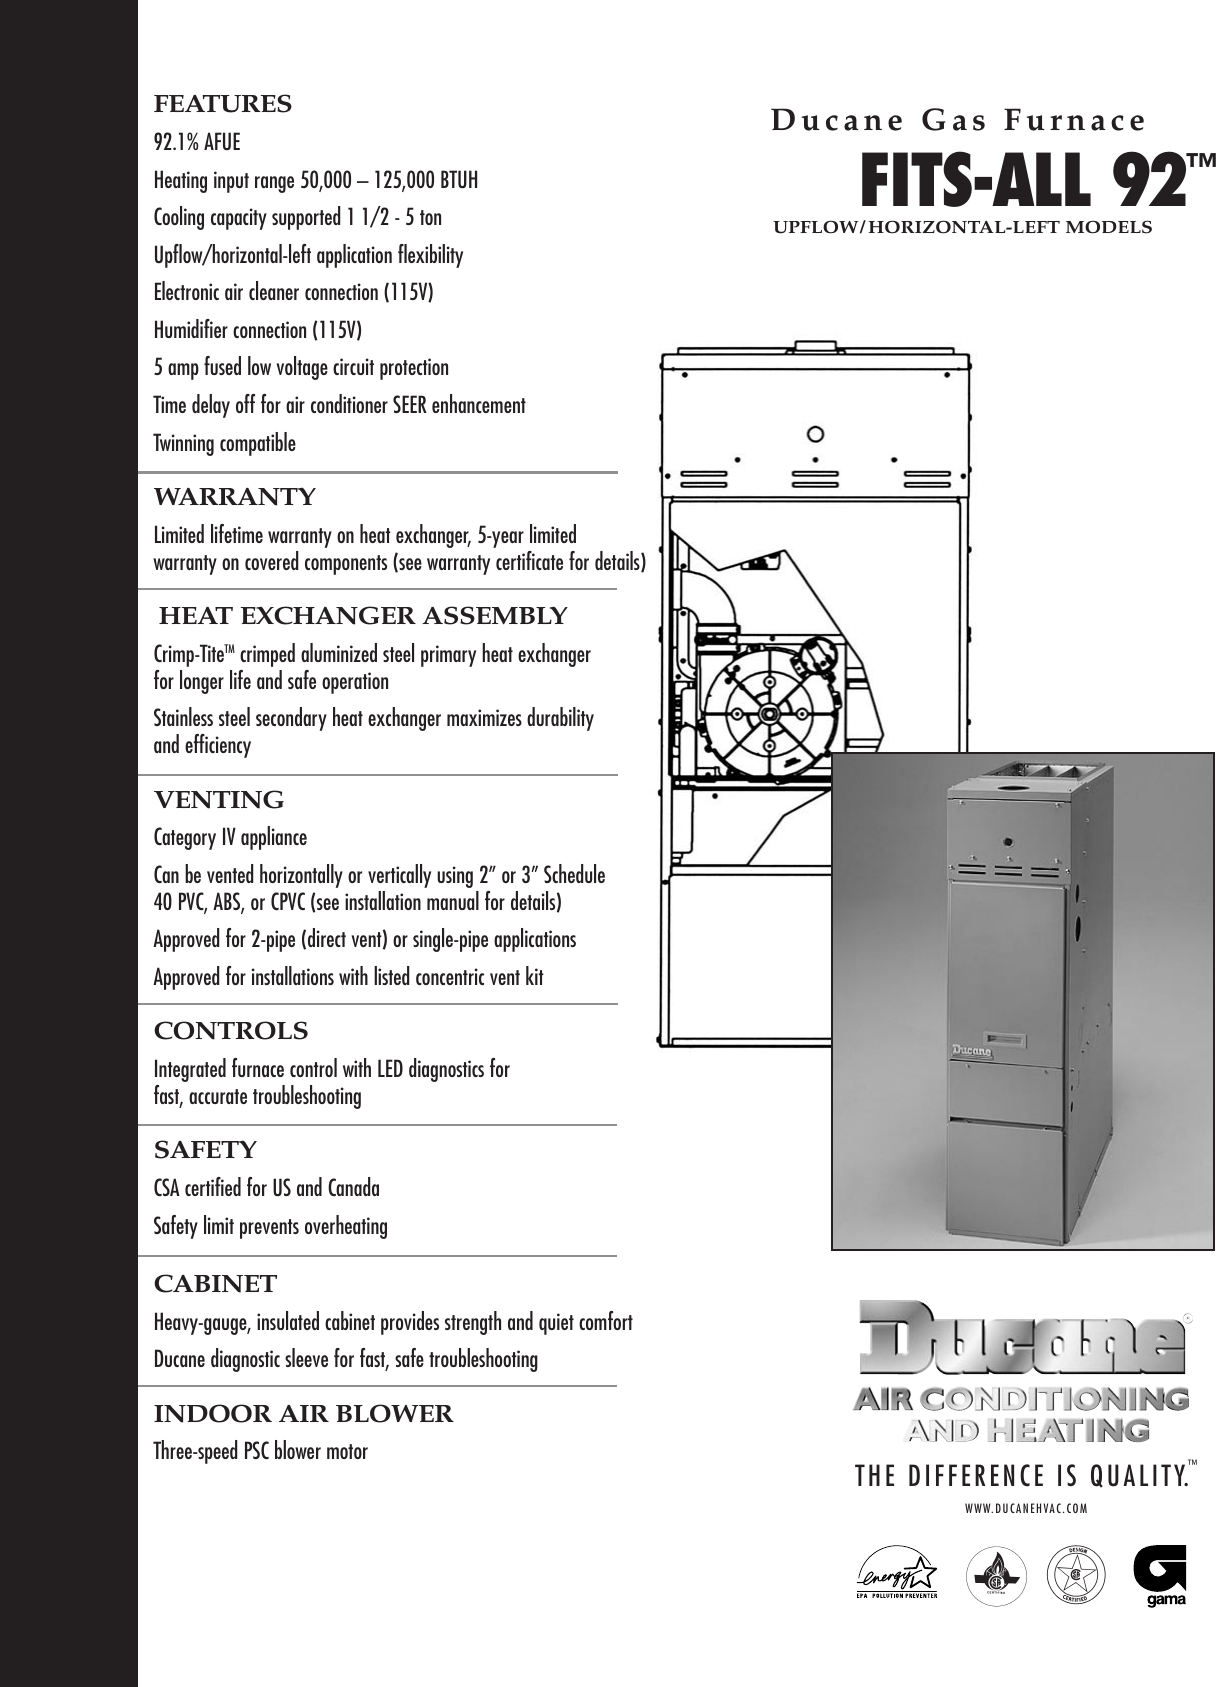 [SCHEMATICS_4ER]  Ducane Hvac Fits All 92 Users Manual 20590702 | Wiring Diagram For Ducane Air Conditioner |  | UserManual.wiki